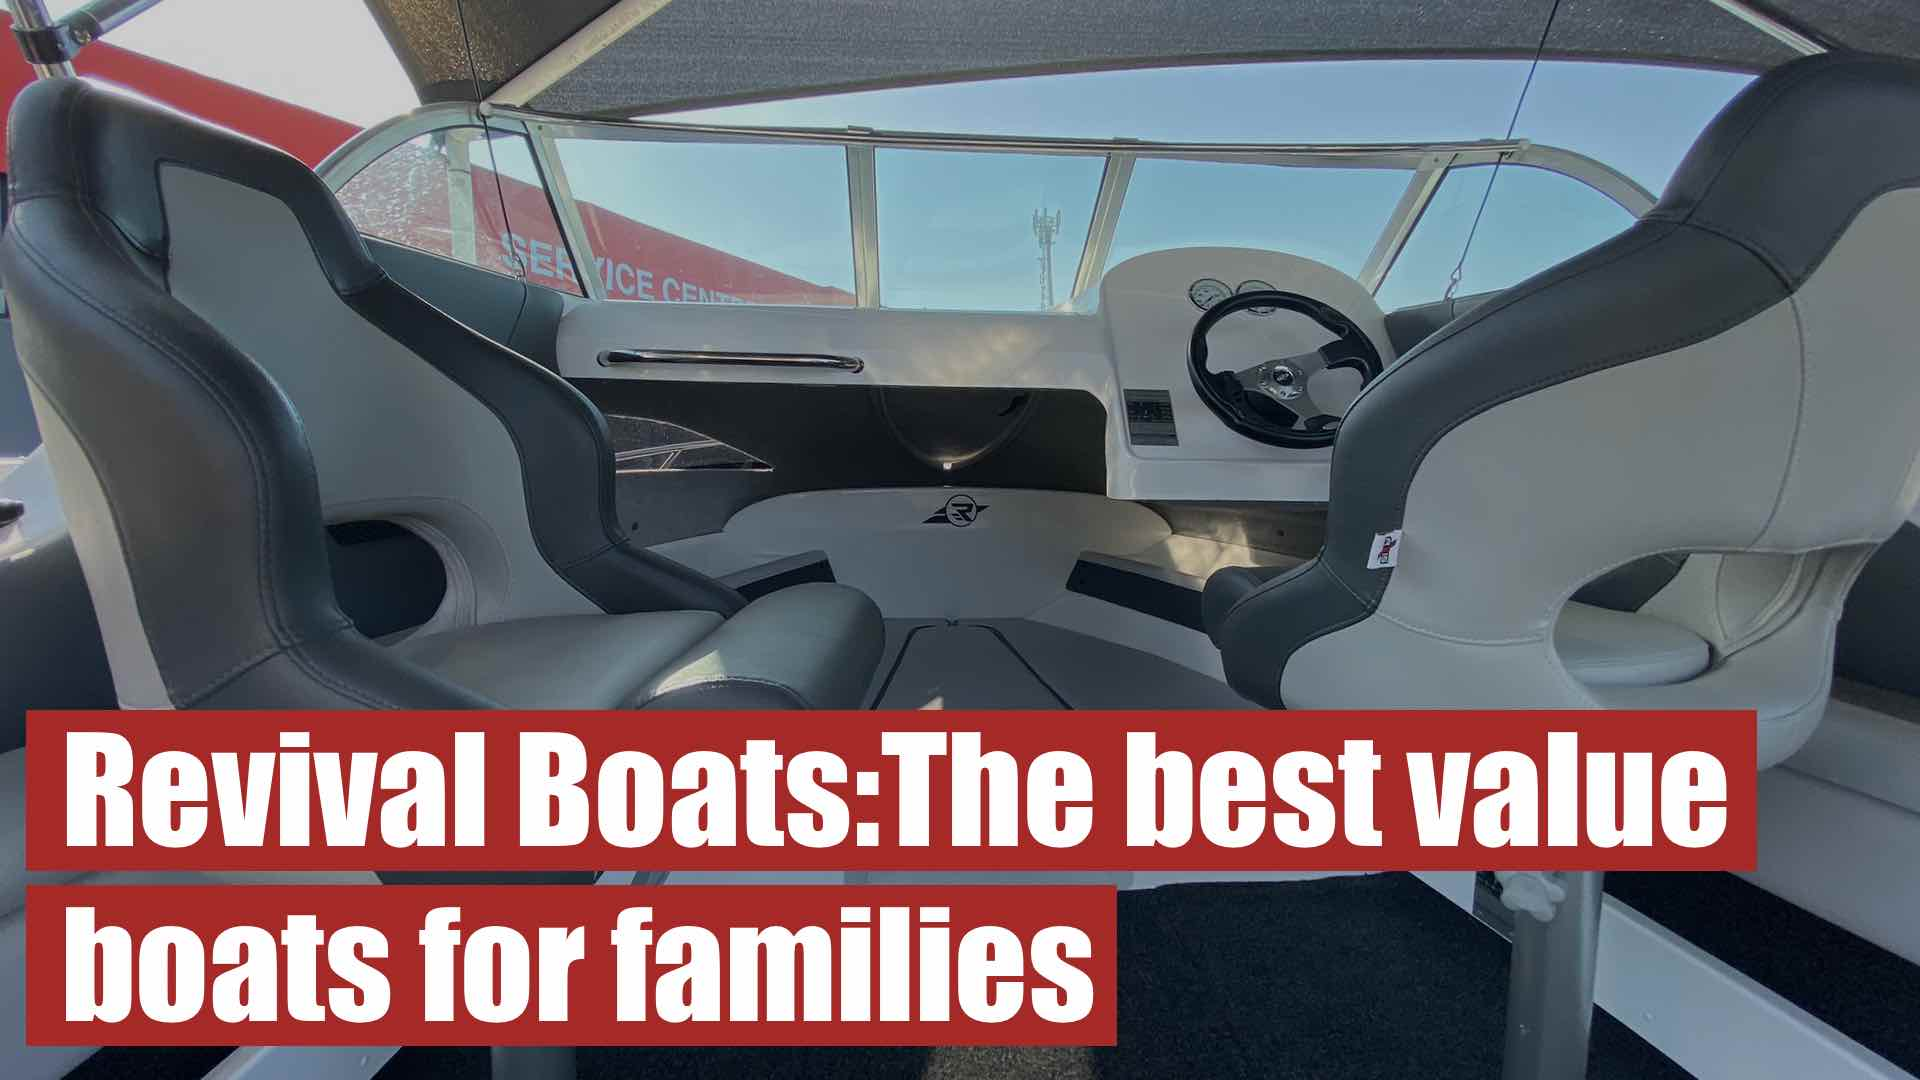 Revival Boats: The Best Value Boat For Families